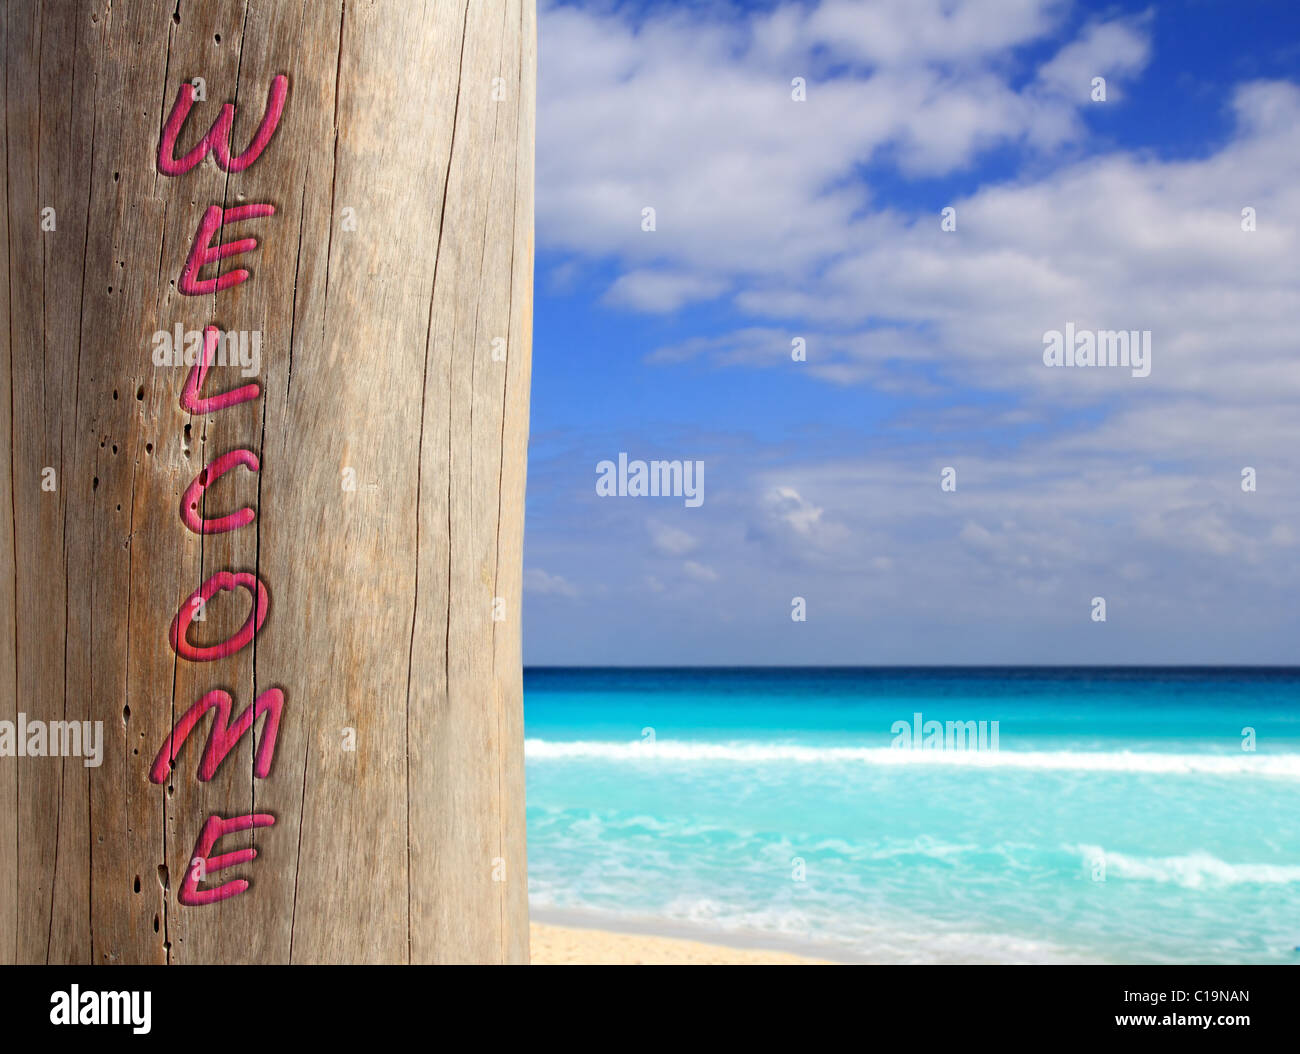 Caribbean tropical beach spell welcome written in wood trunk - Stock Image